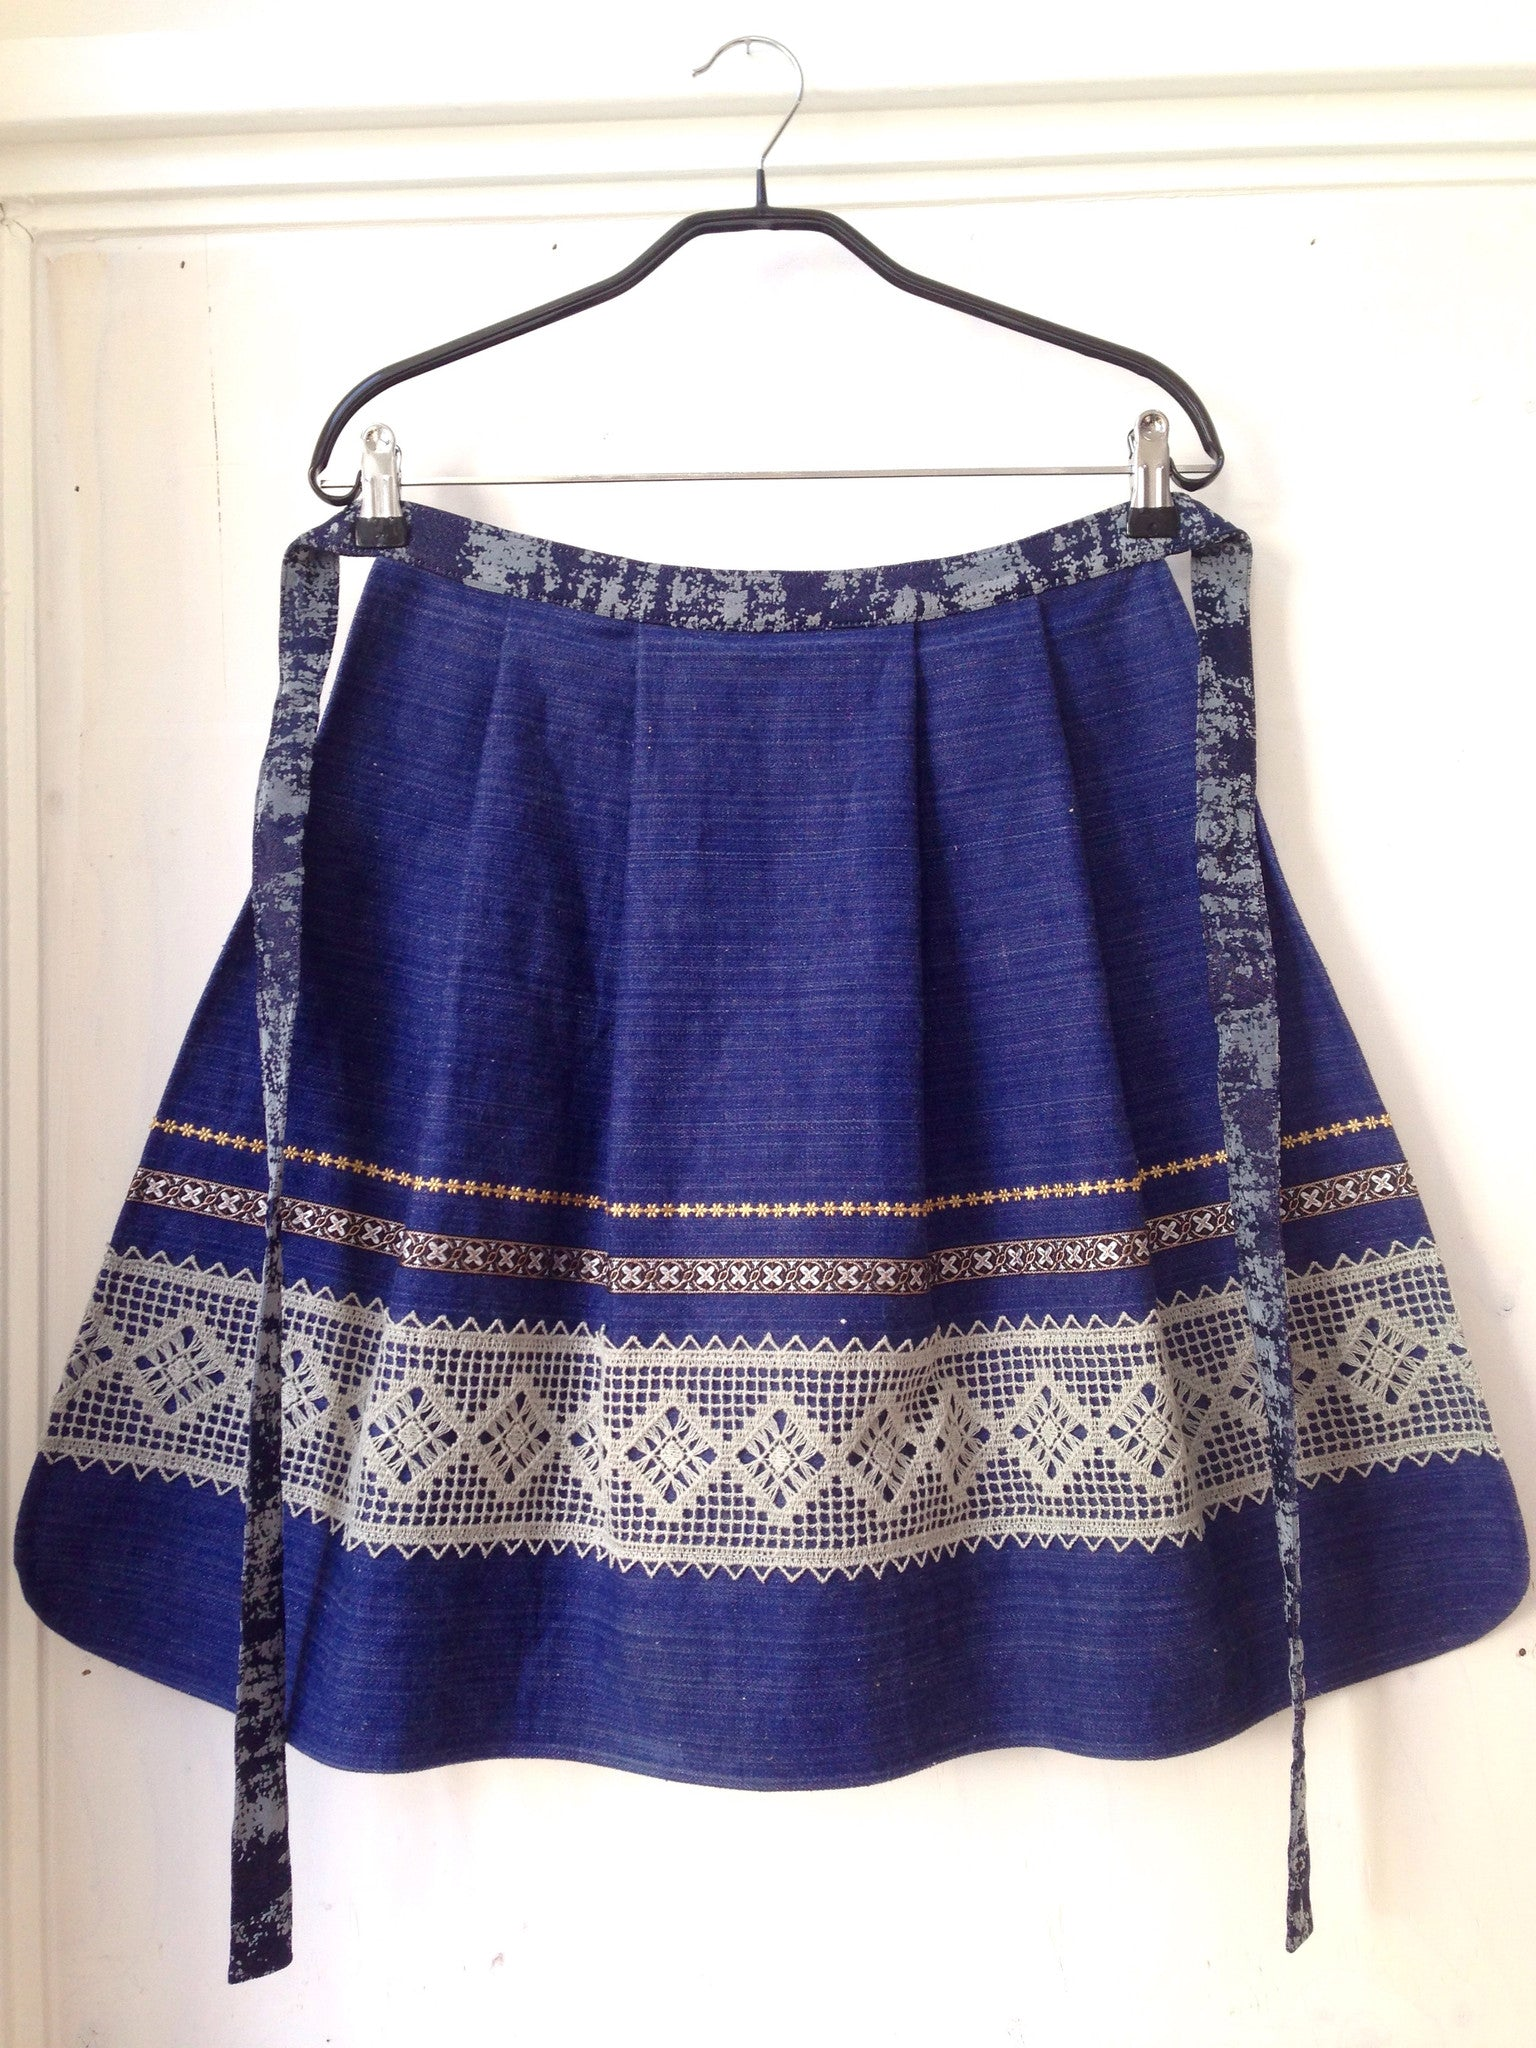 Skirt/apron - denim with ribbons (one size)